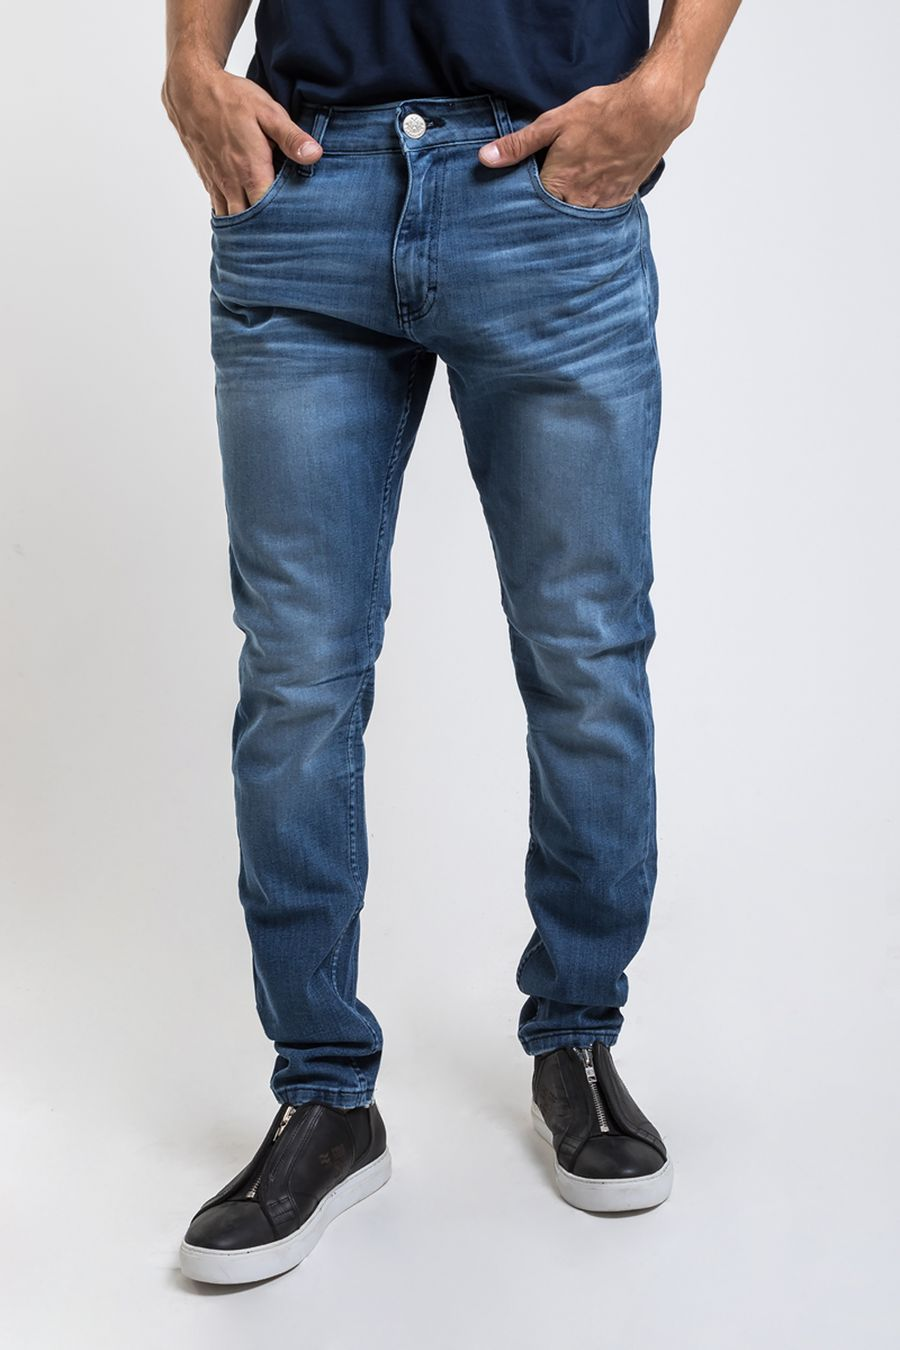 JEAN-H-DENIM-BLUE-TAG-BONNIE